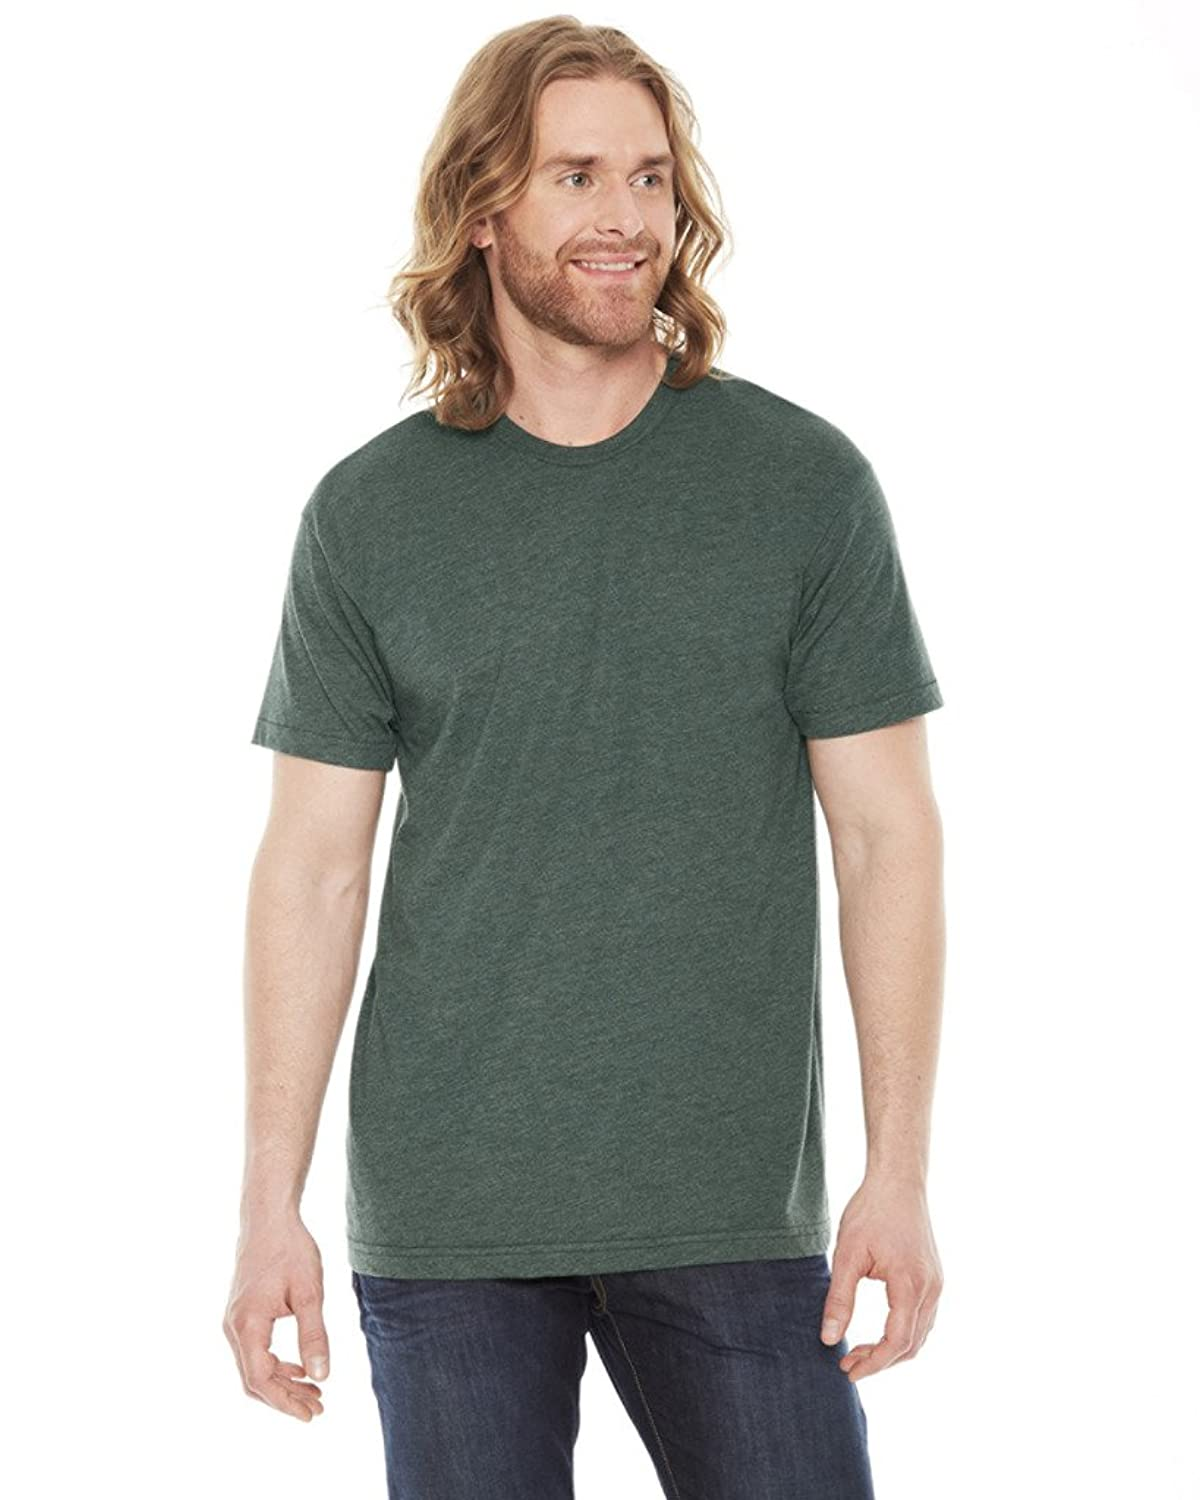 American Apparel Unisex Poly/cotton Short Sleeve Crew Neck - Heather Forest - L